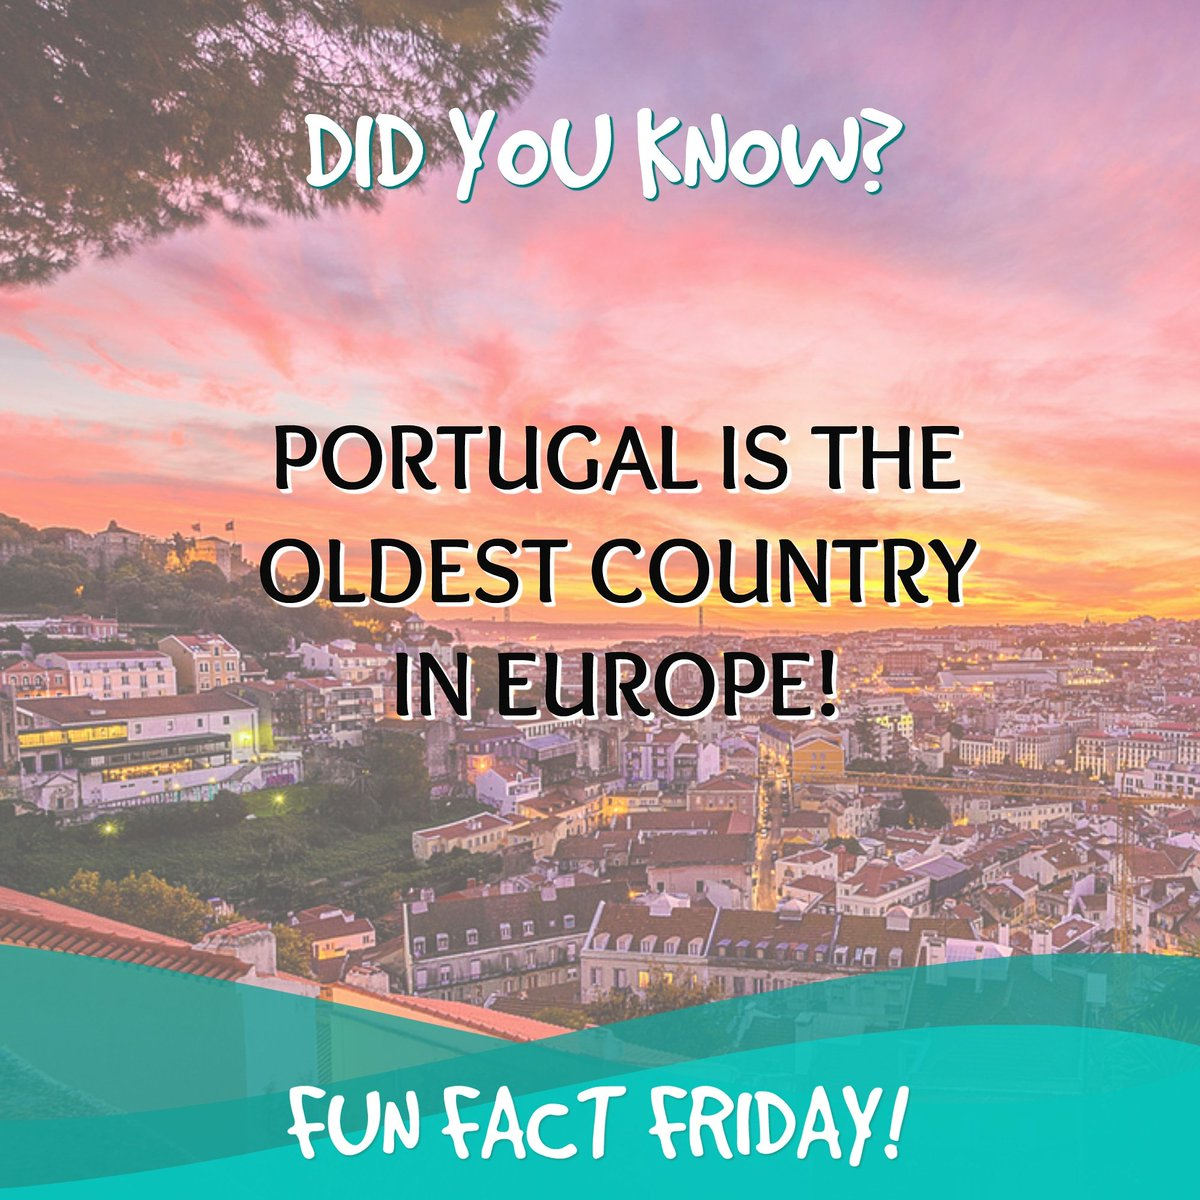 Wellness in Portugal's photo on #FunFactFriday